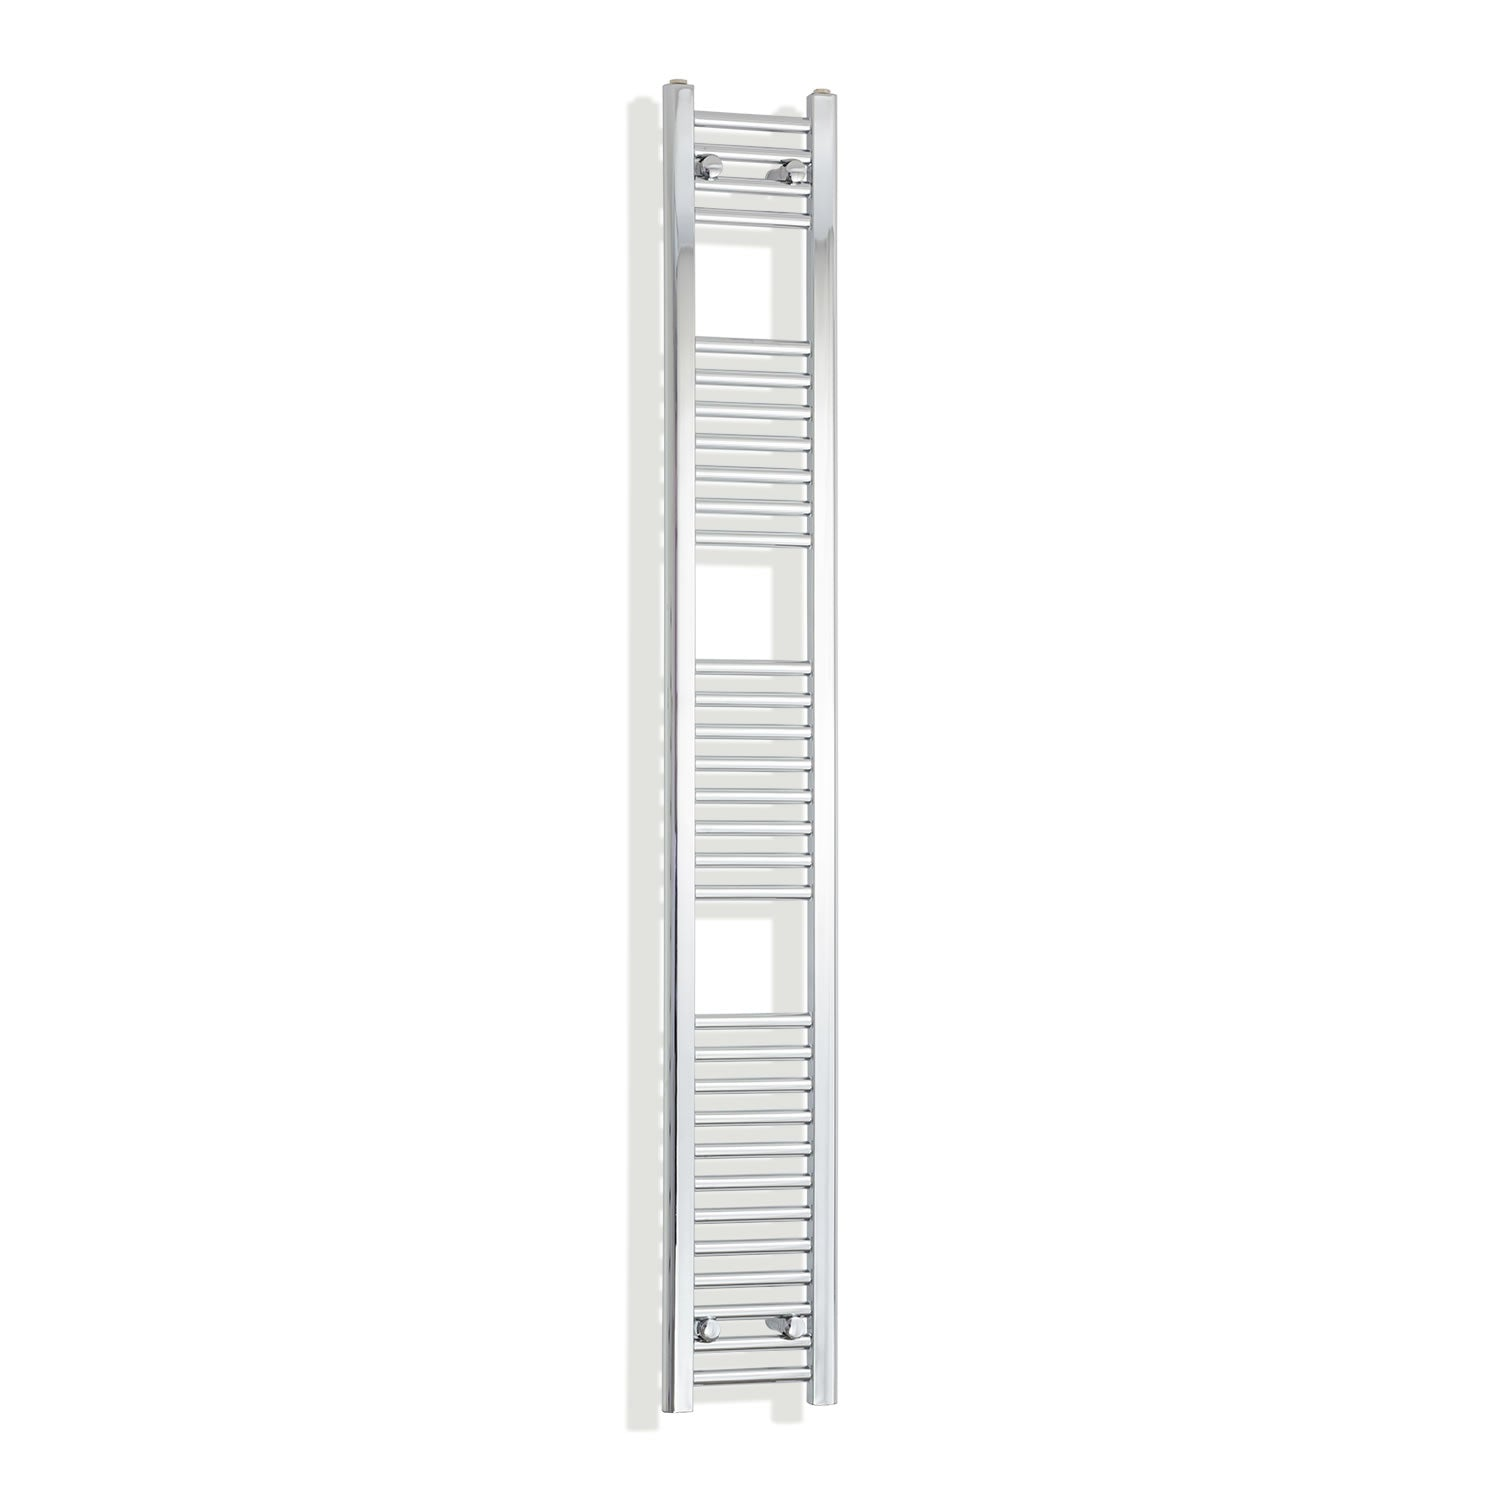 200mm Wide 1800mm High Chrome Towel Rail Radiator